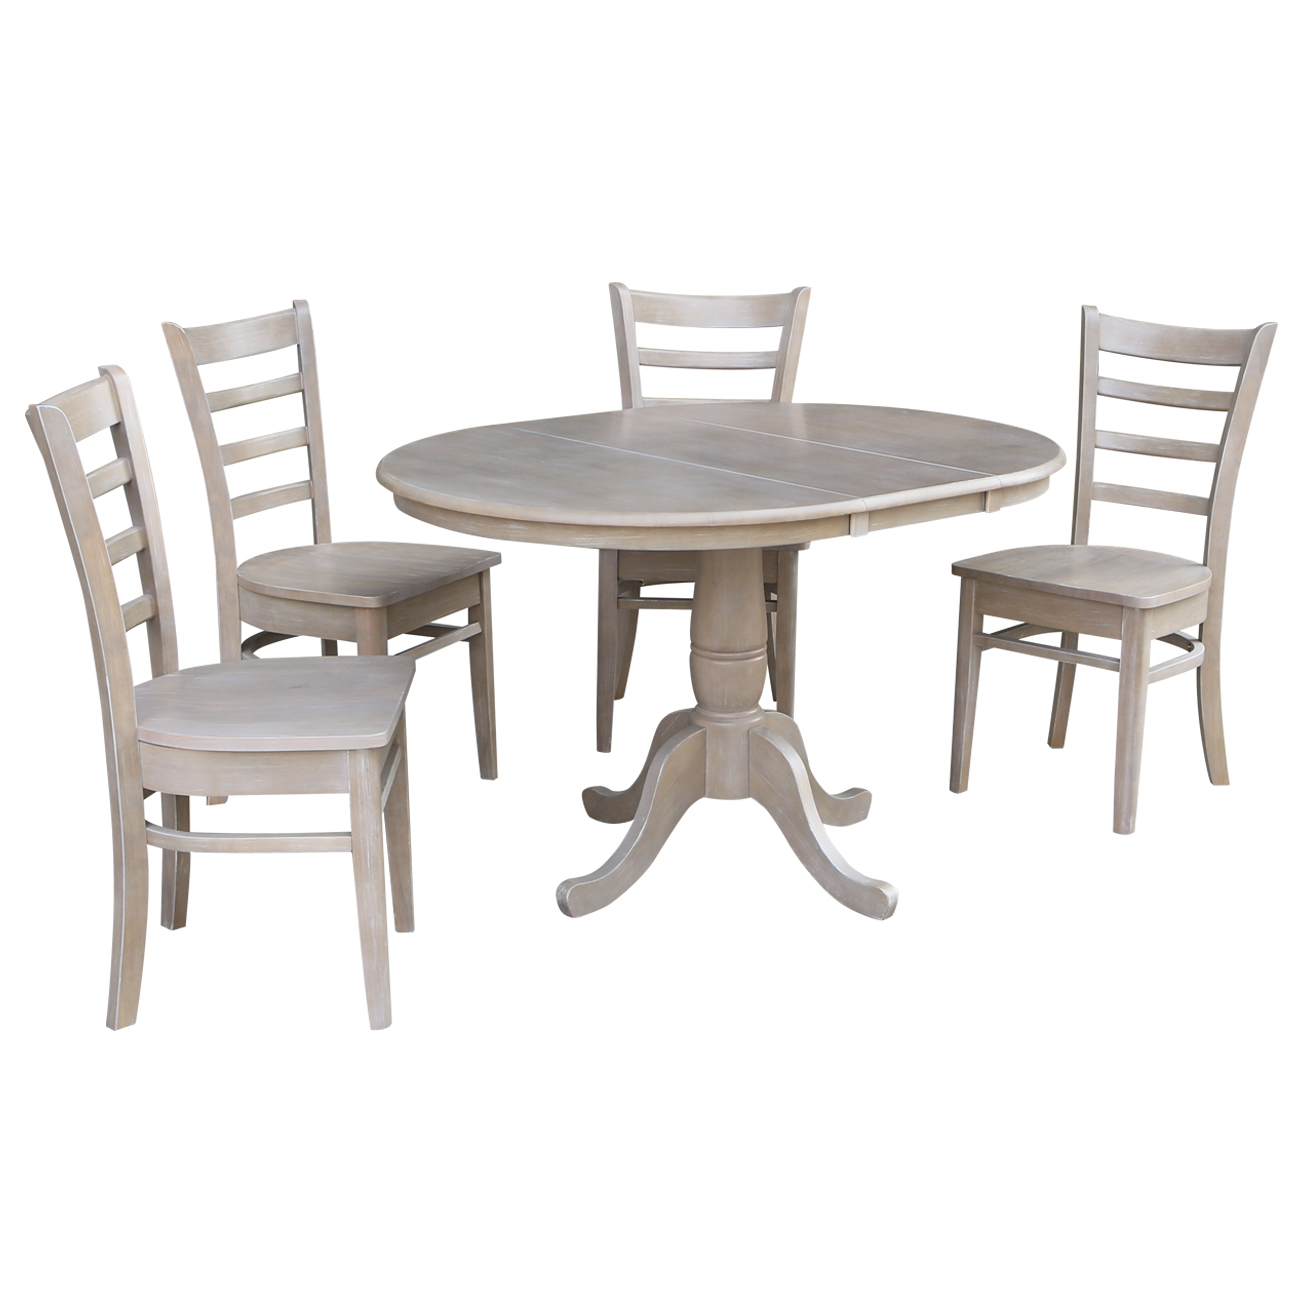 36 Quot Round Dining Table With 12 Quot Leaf And 4 Emily Chairs